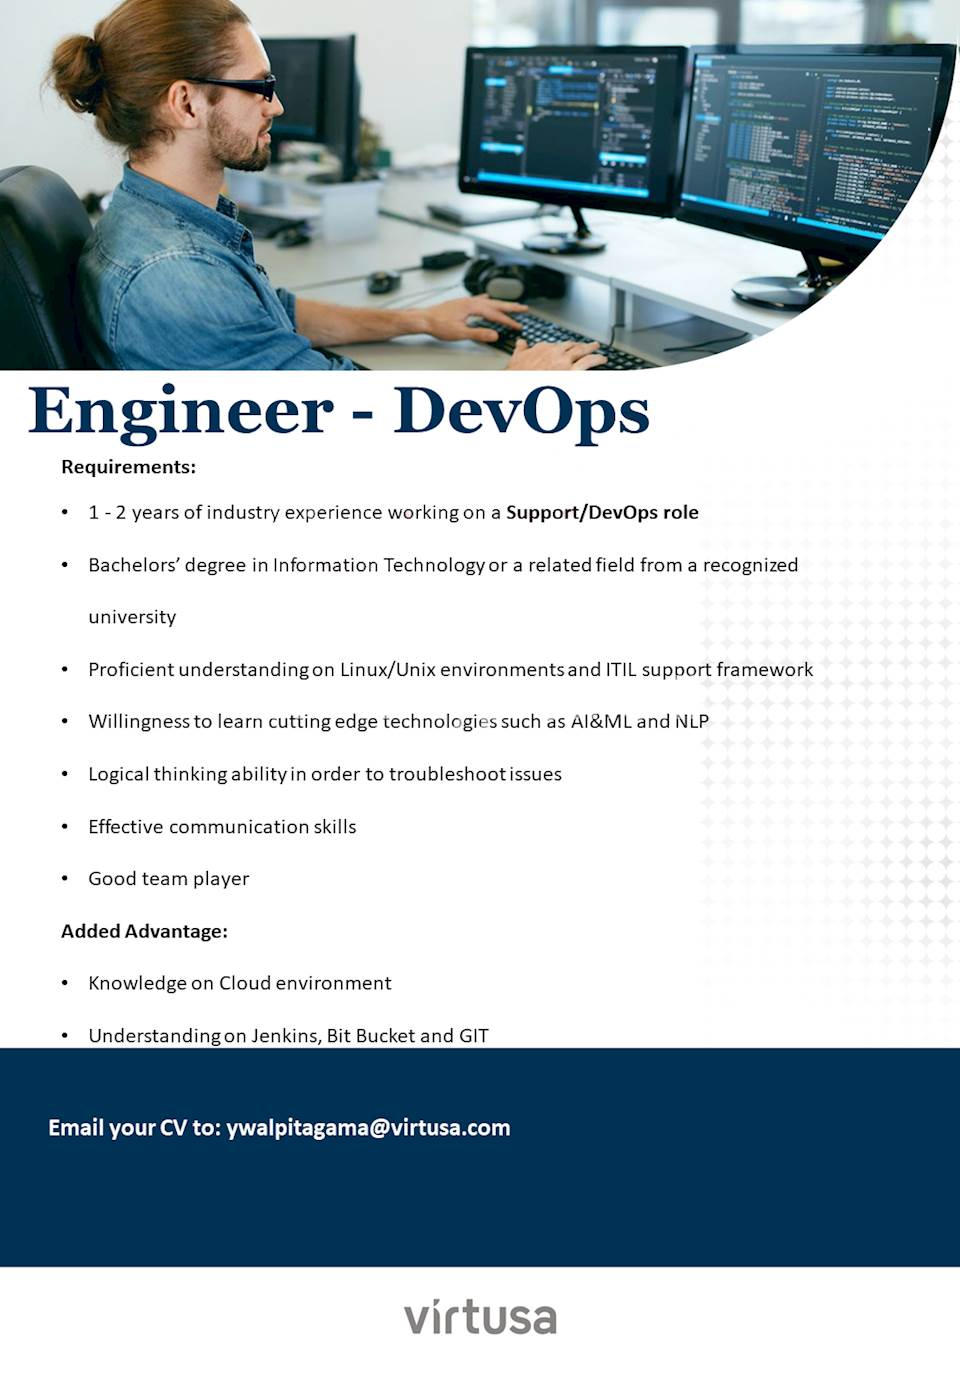 Engineer - DevOps